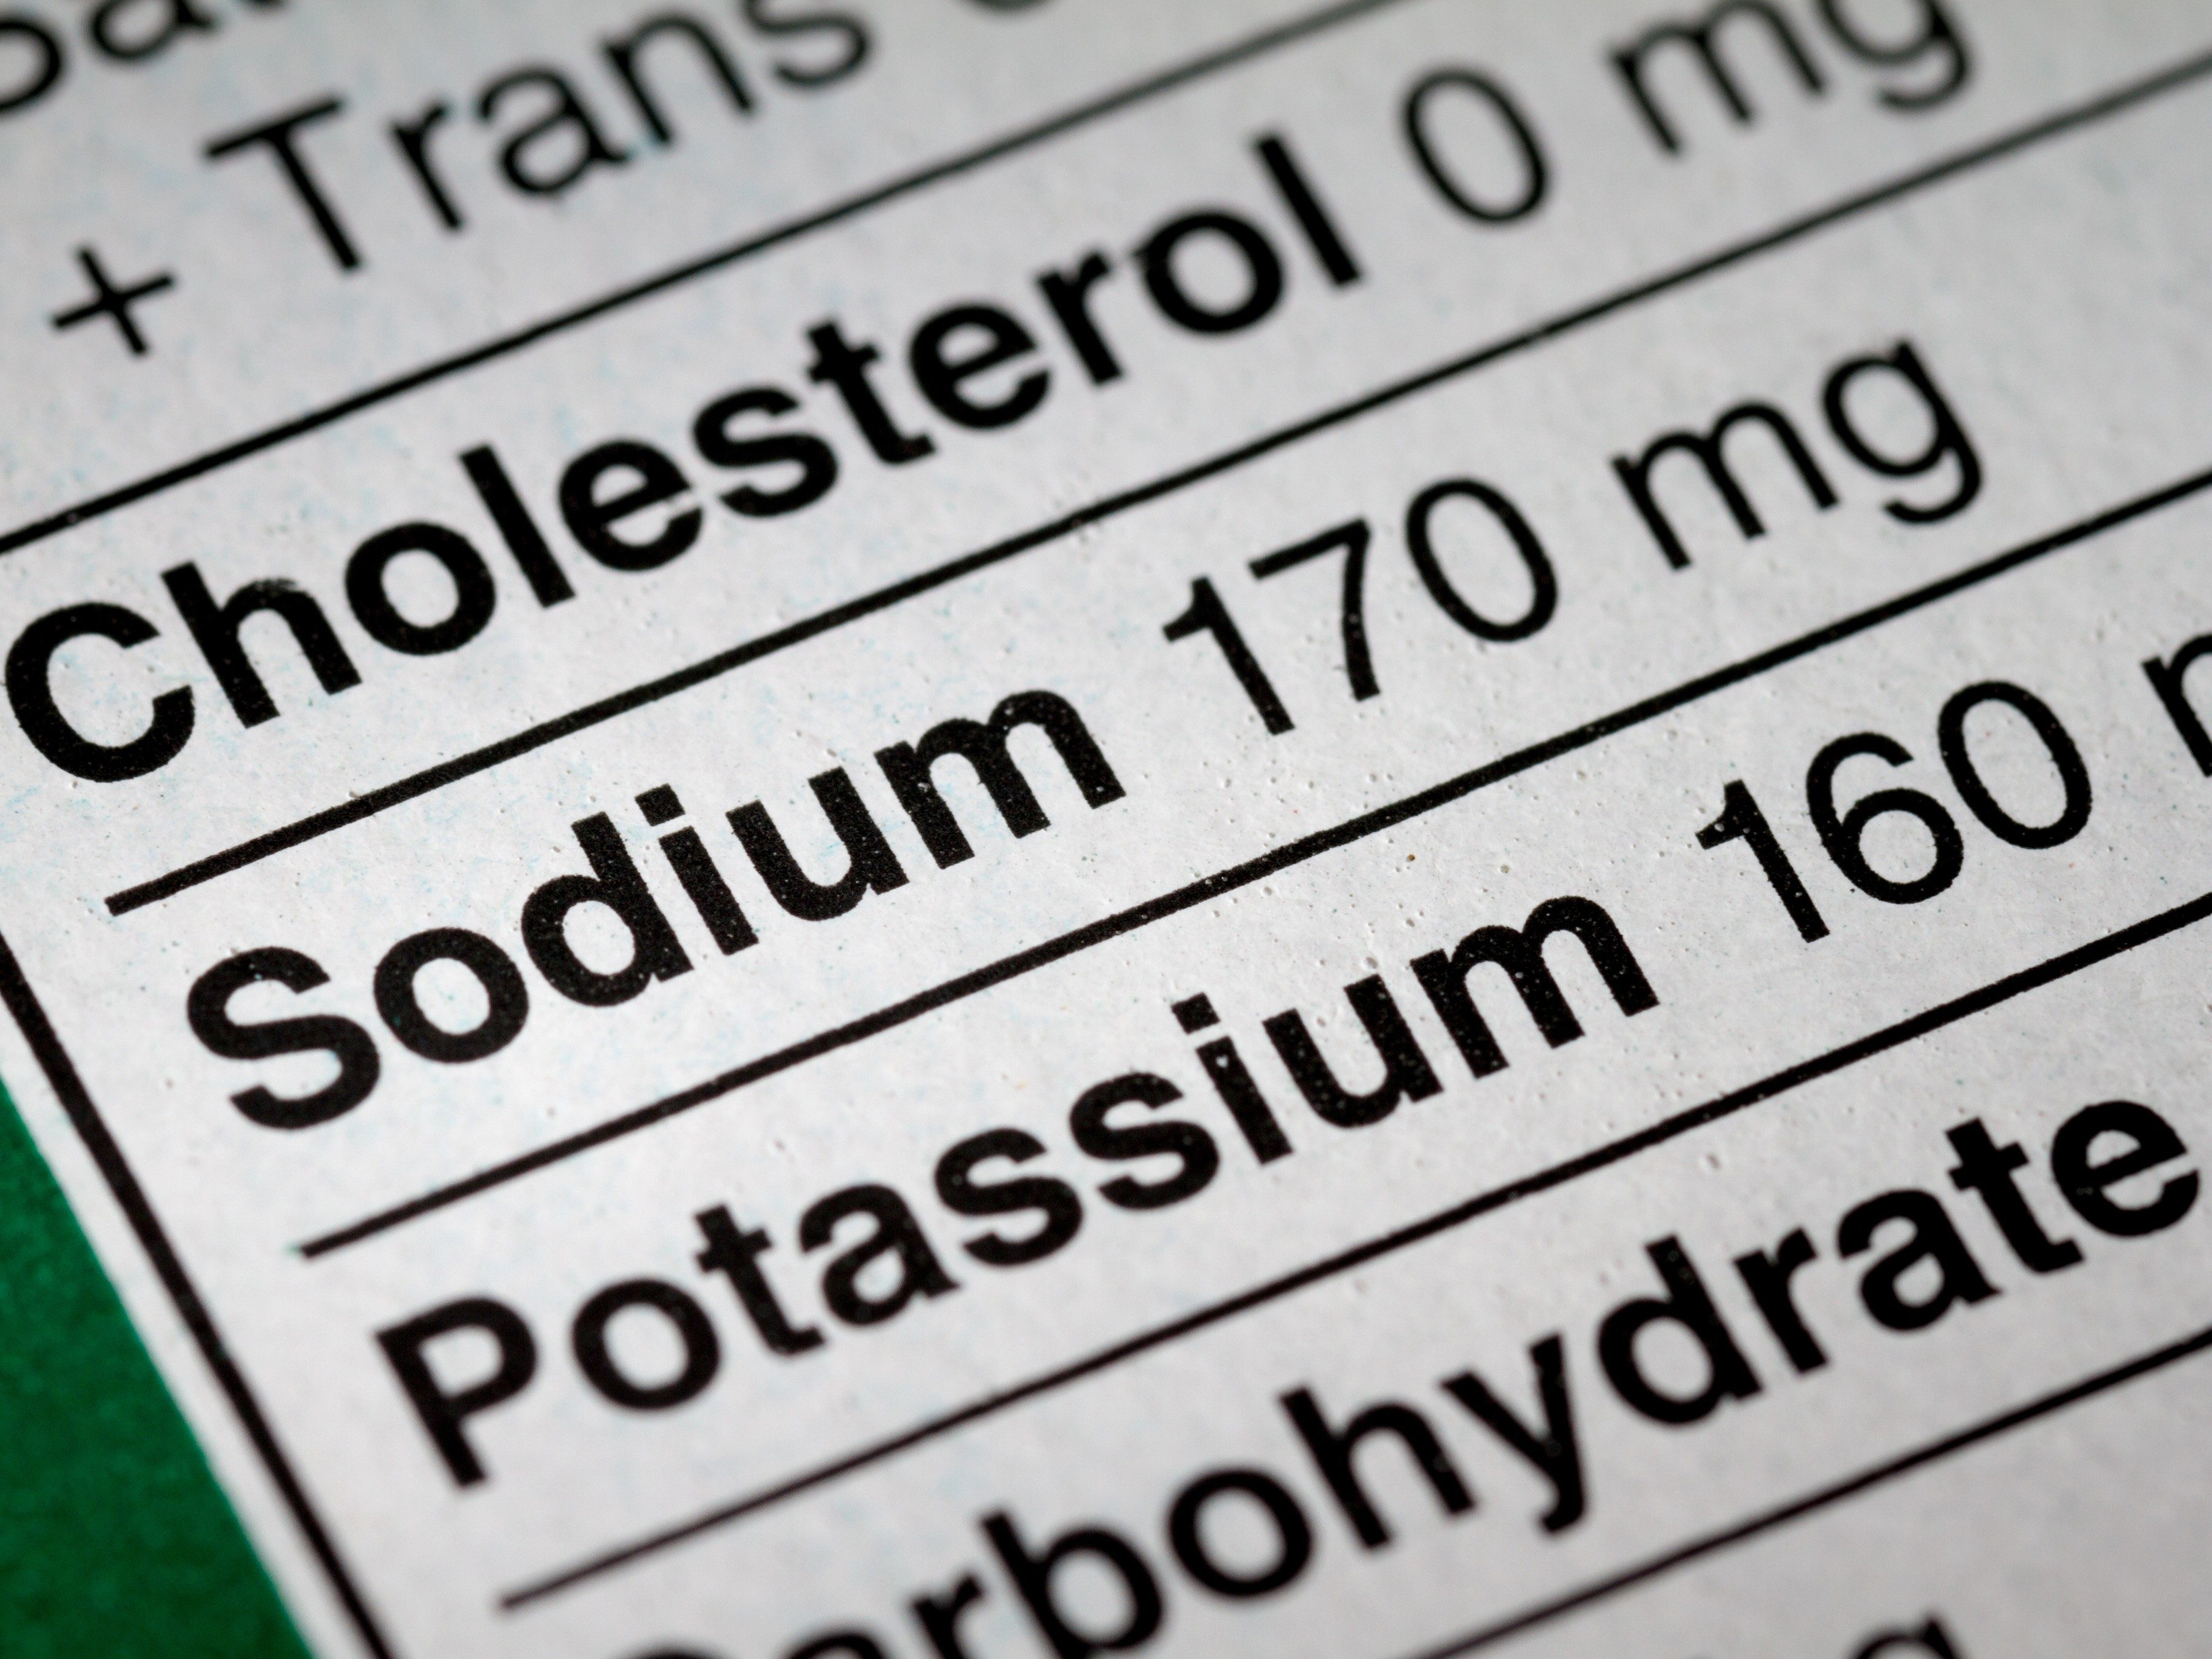 Reading Nutrition Facts: SODIUM